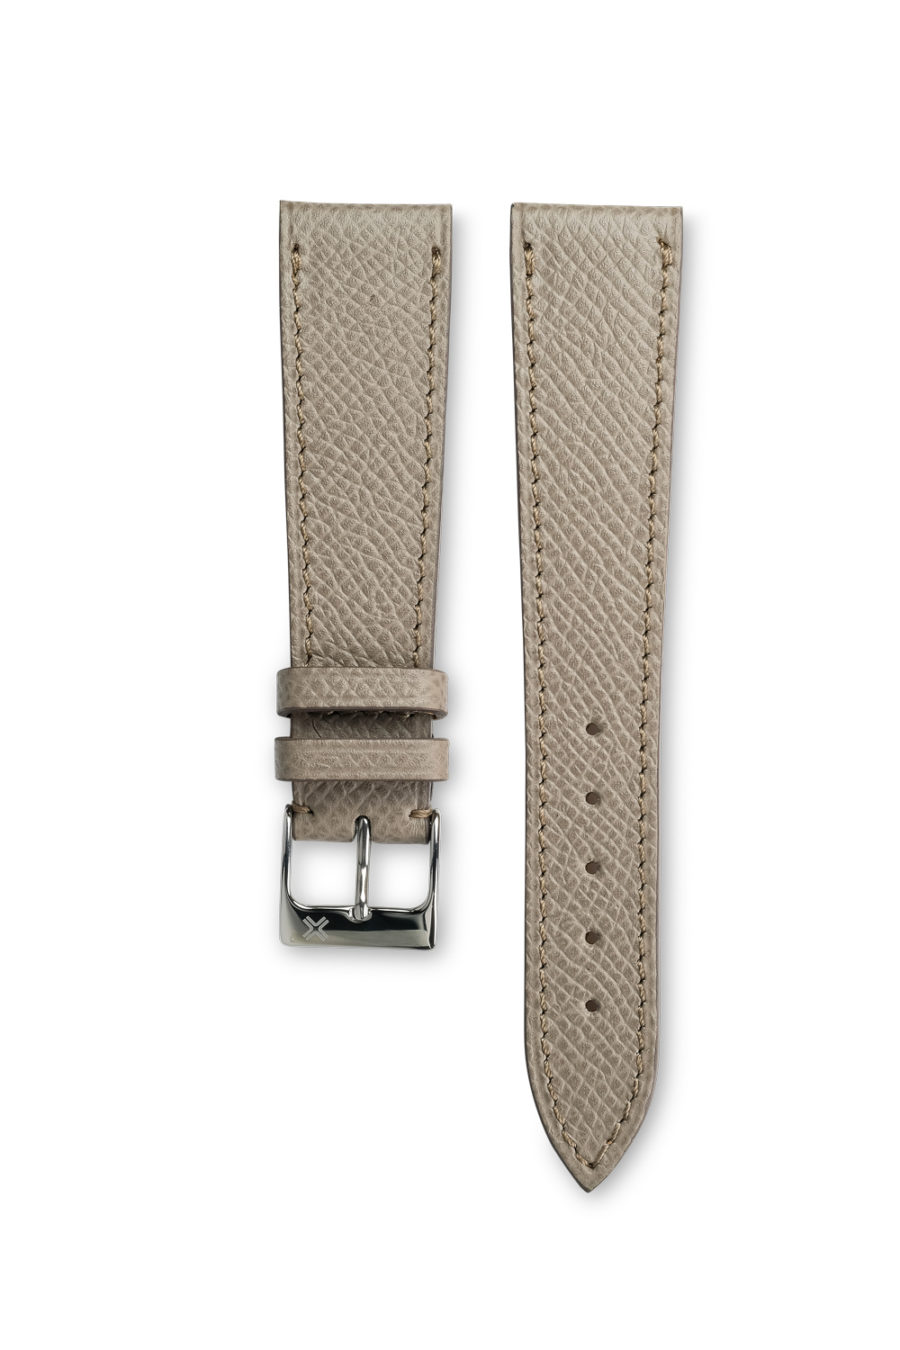 Grained Classic Taupe Beige leather watch strap - tone on tone stitching - LUGS brand